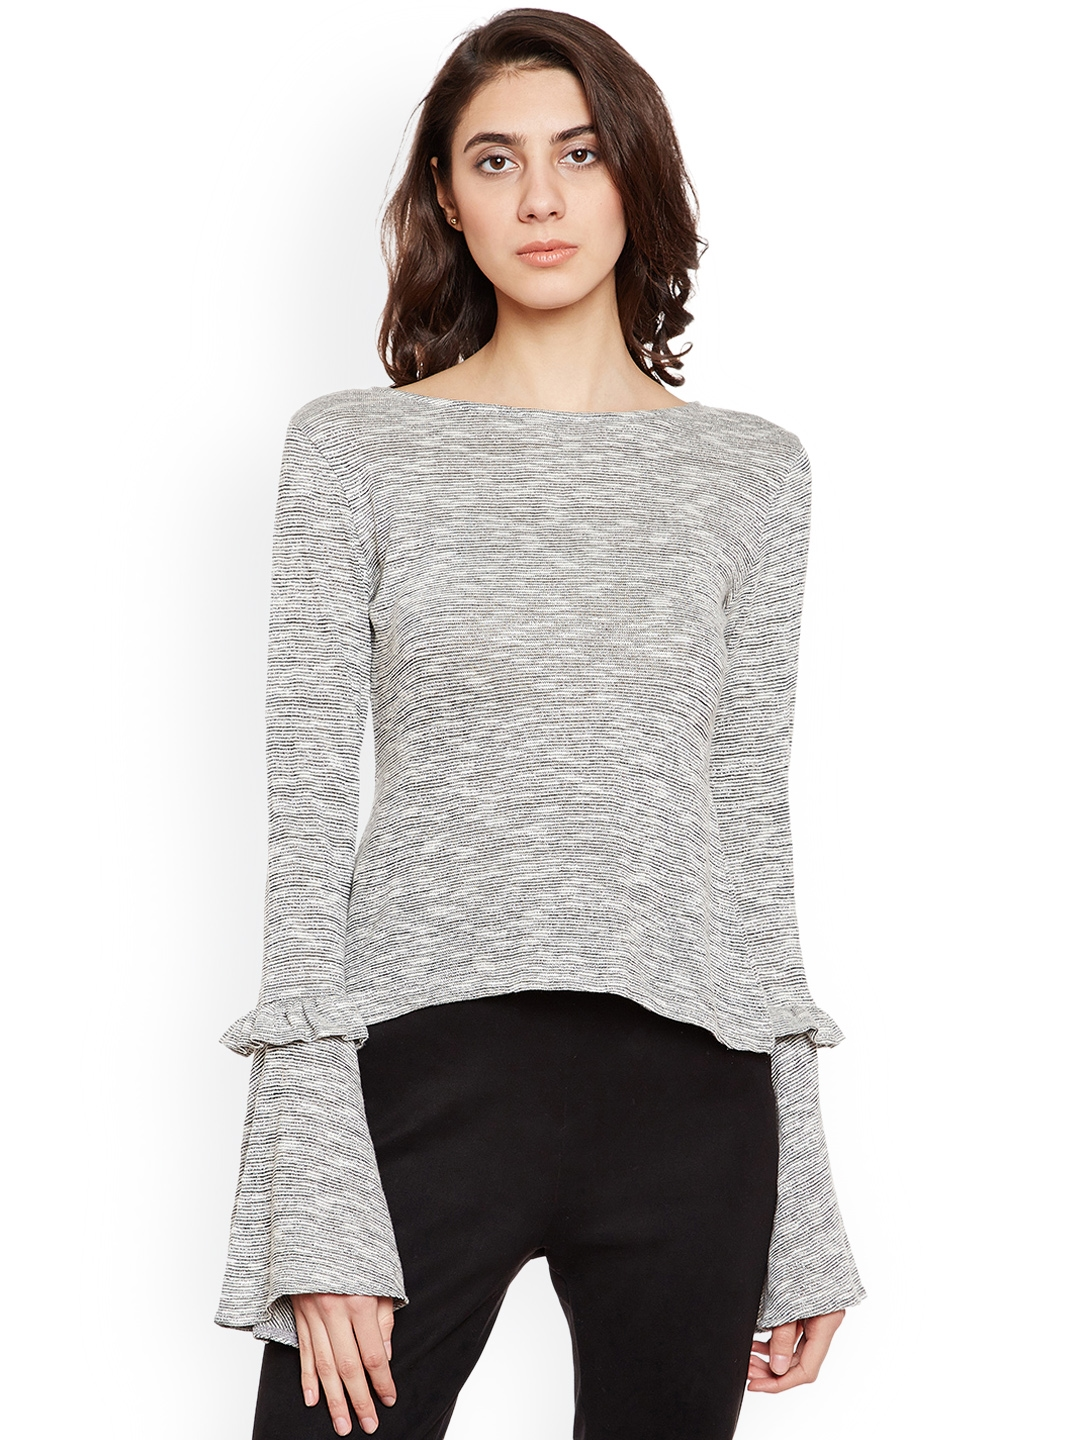 PRIMO KNOT Women Grey Self Design Fitted Top